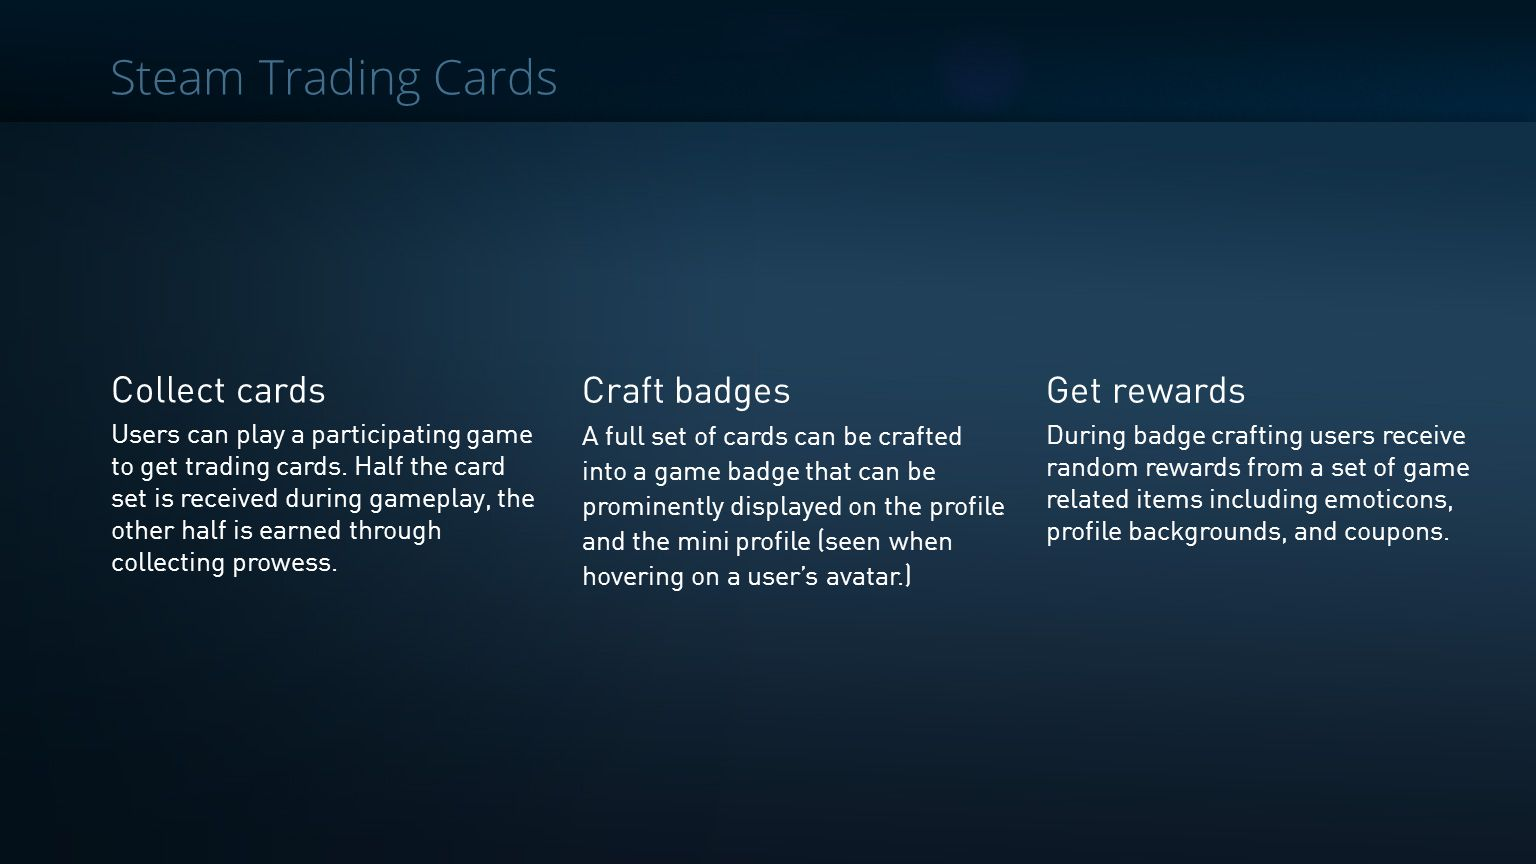 Collect cards Users can play a participating game to get trading cards. Half the card set is received during gameplay, the other half is earned throug